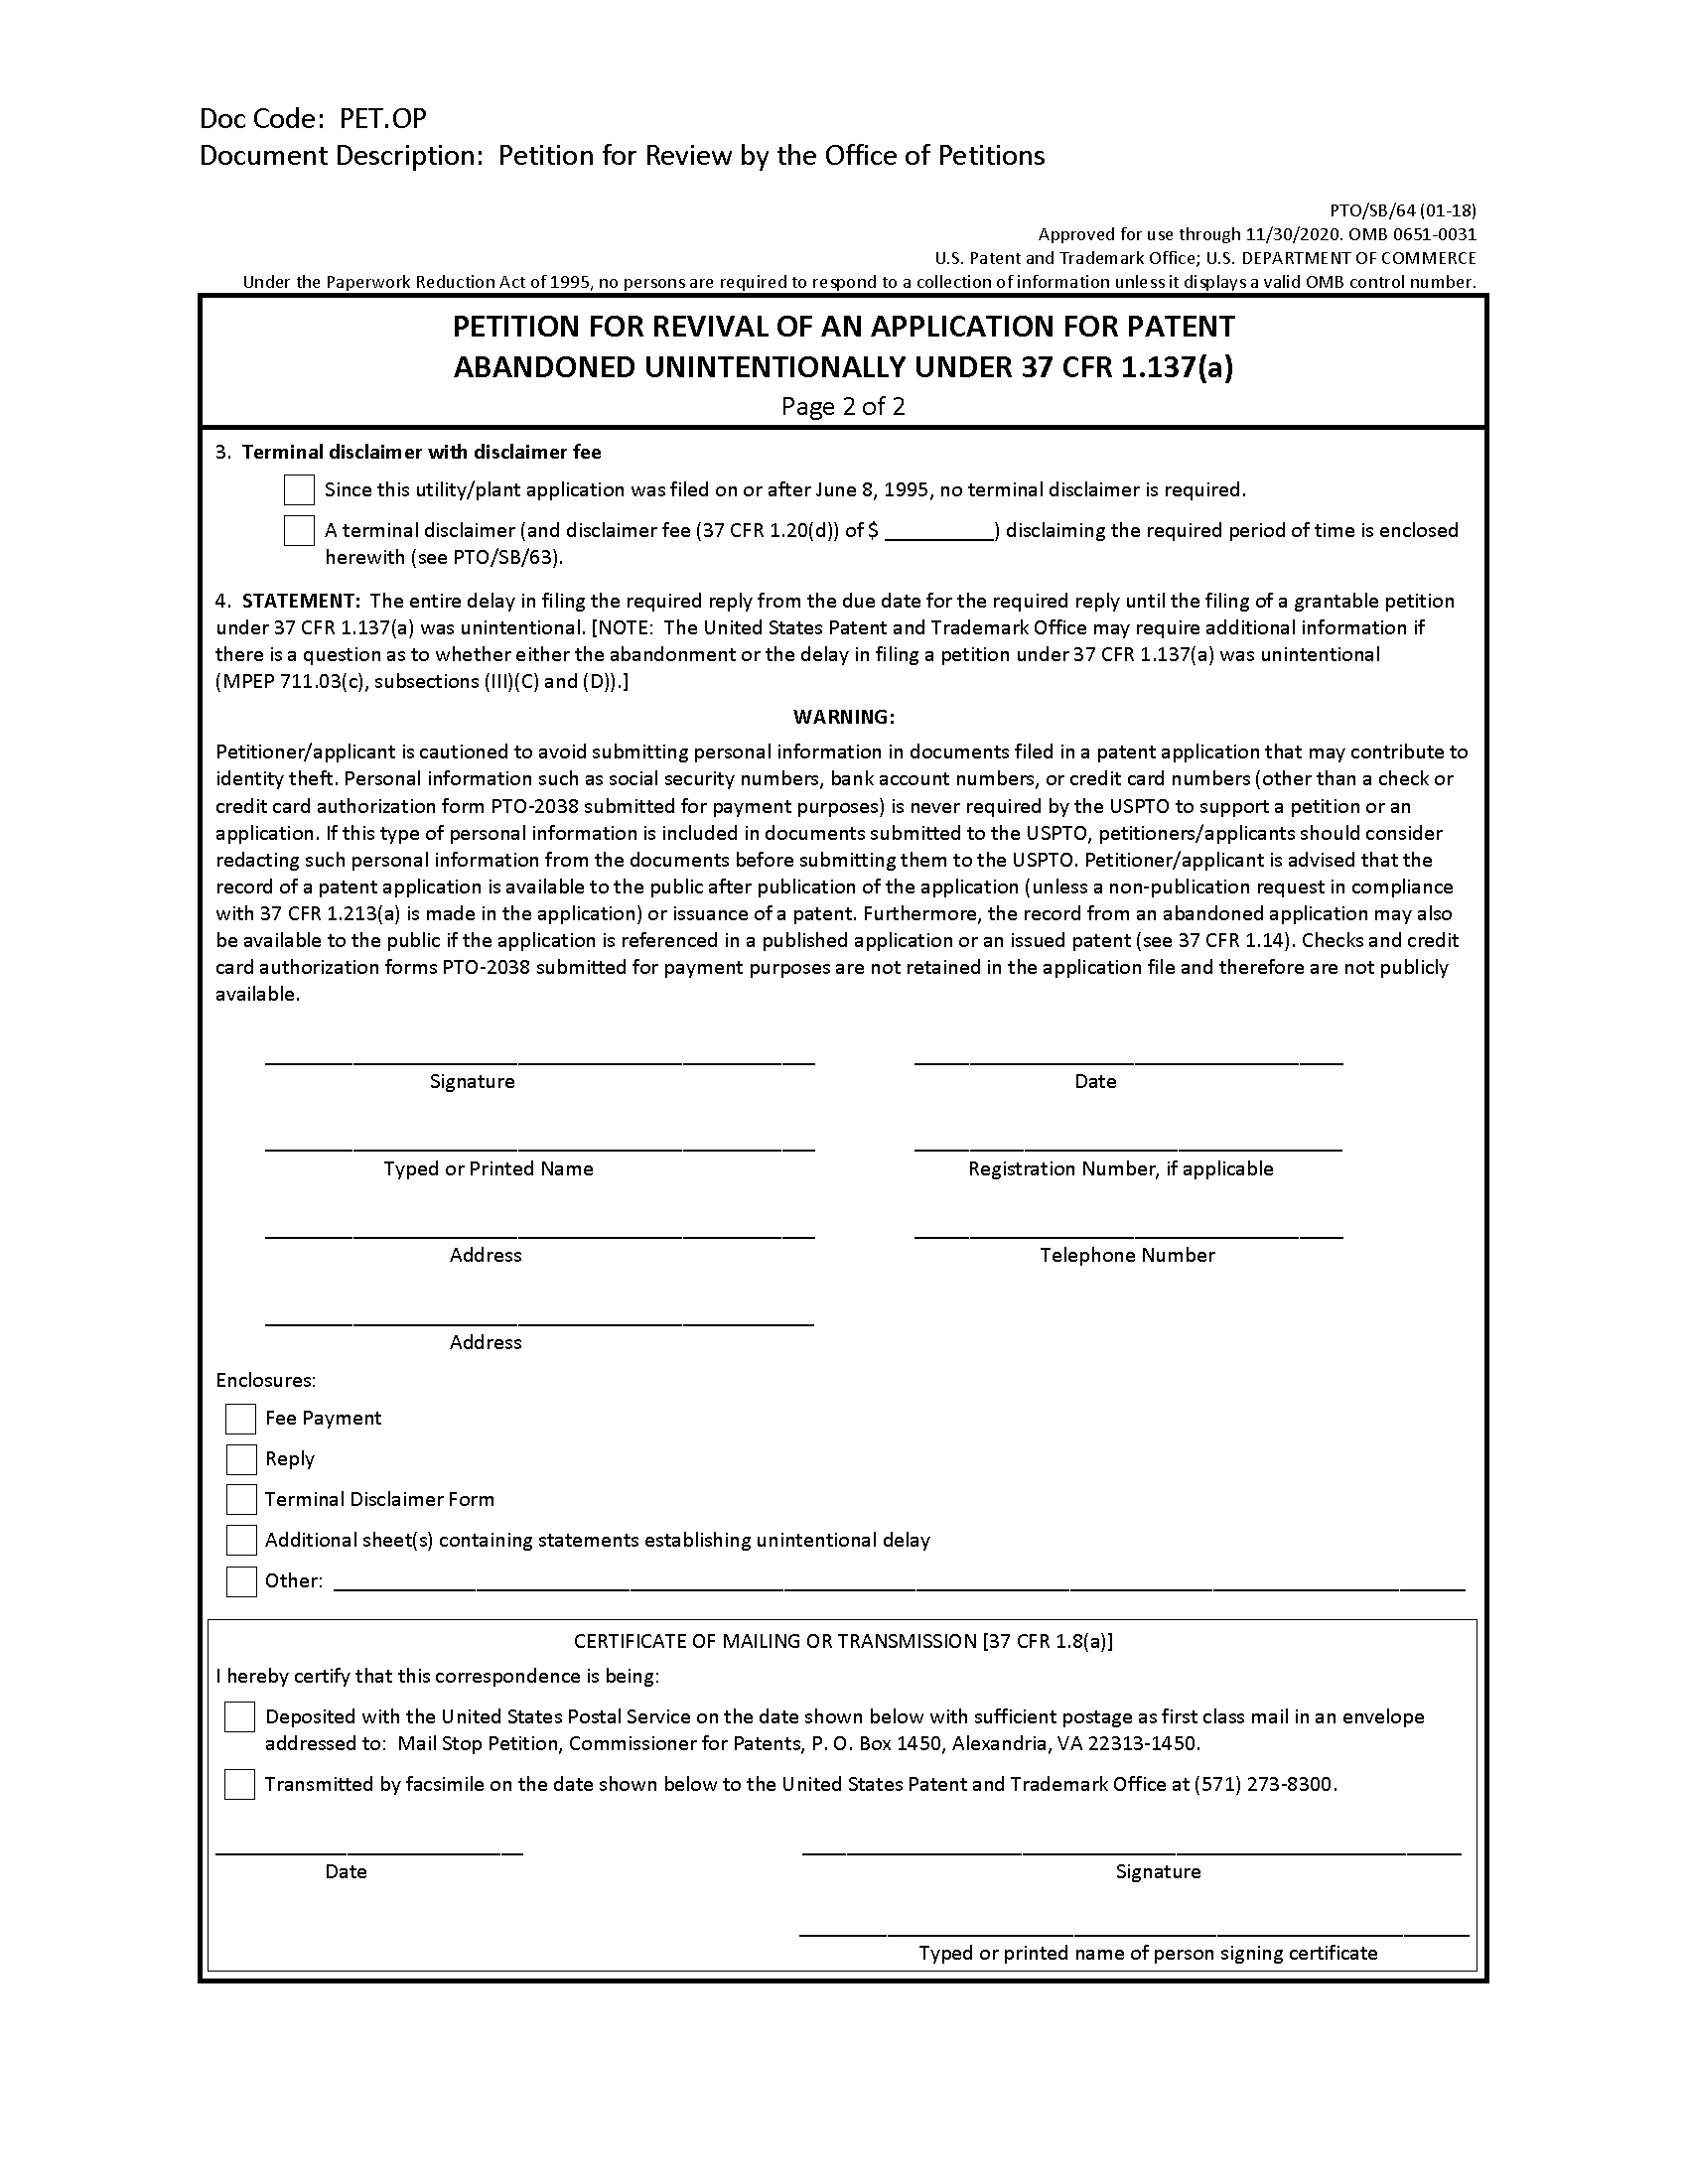 abandonment of patent application form pto sb 64 petition for revival of an application for patent abandoned